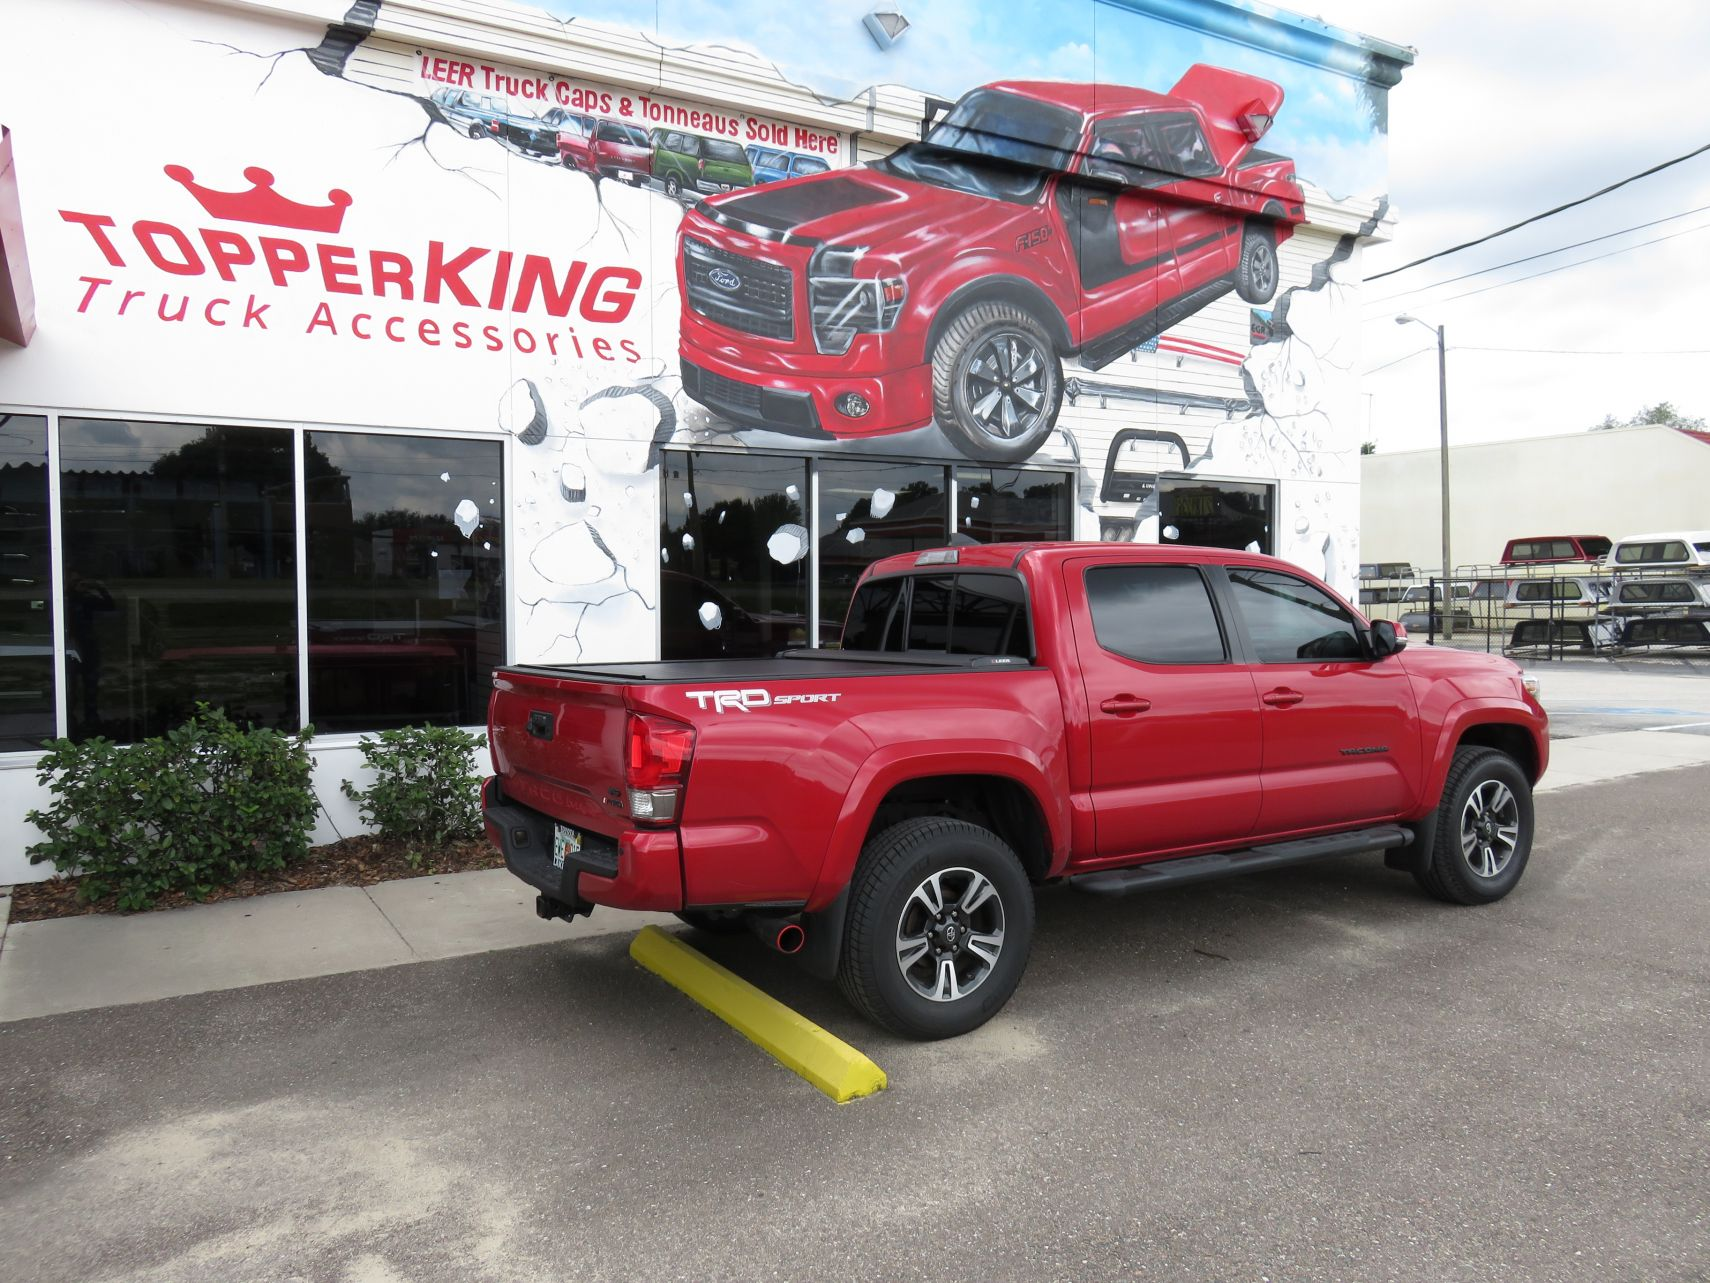 2017 Toyota Tacoma LEER Ricochet Black Out Nerf Bars, Custom Hitch by TopperKING in Brandon, FL 813-689-2449 or Clearwater, FL 727-530-9066. Call today!